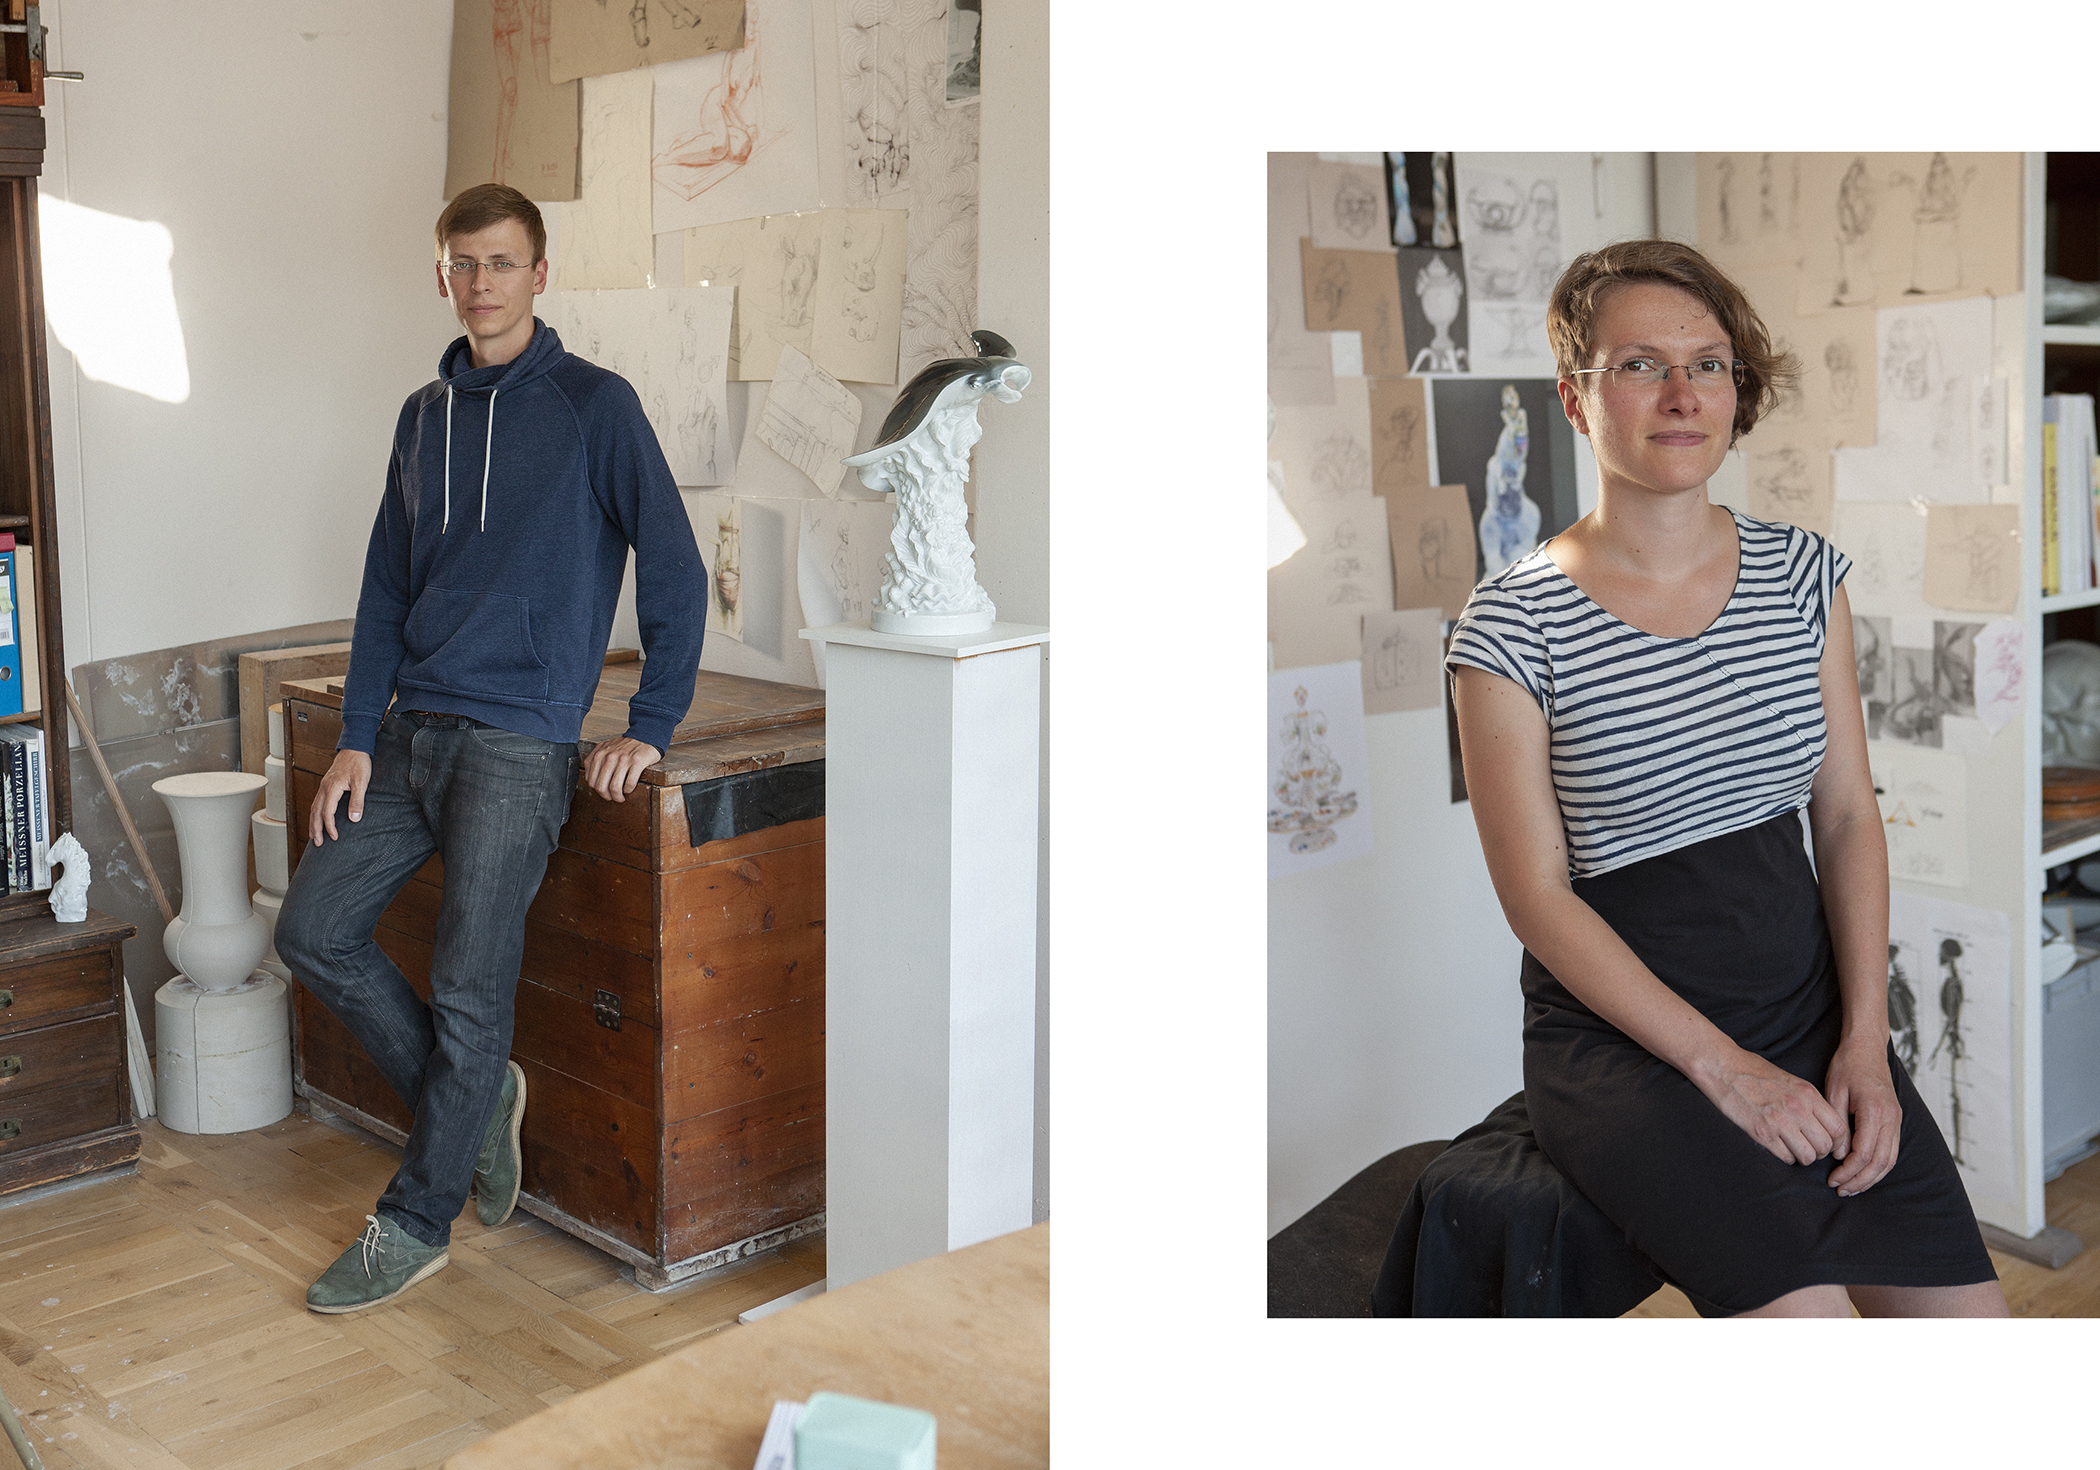 Maria Walther & Maximilian Hagstotz   artists at Meissen porcelain manufactory   Dresden Special   for  Weltkunst